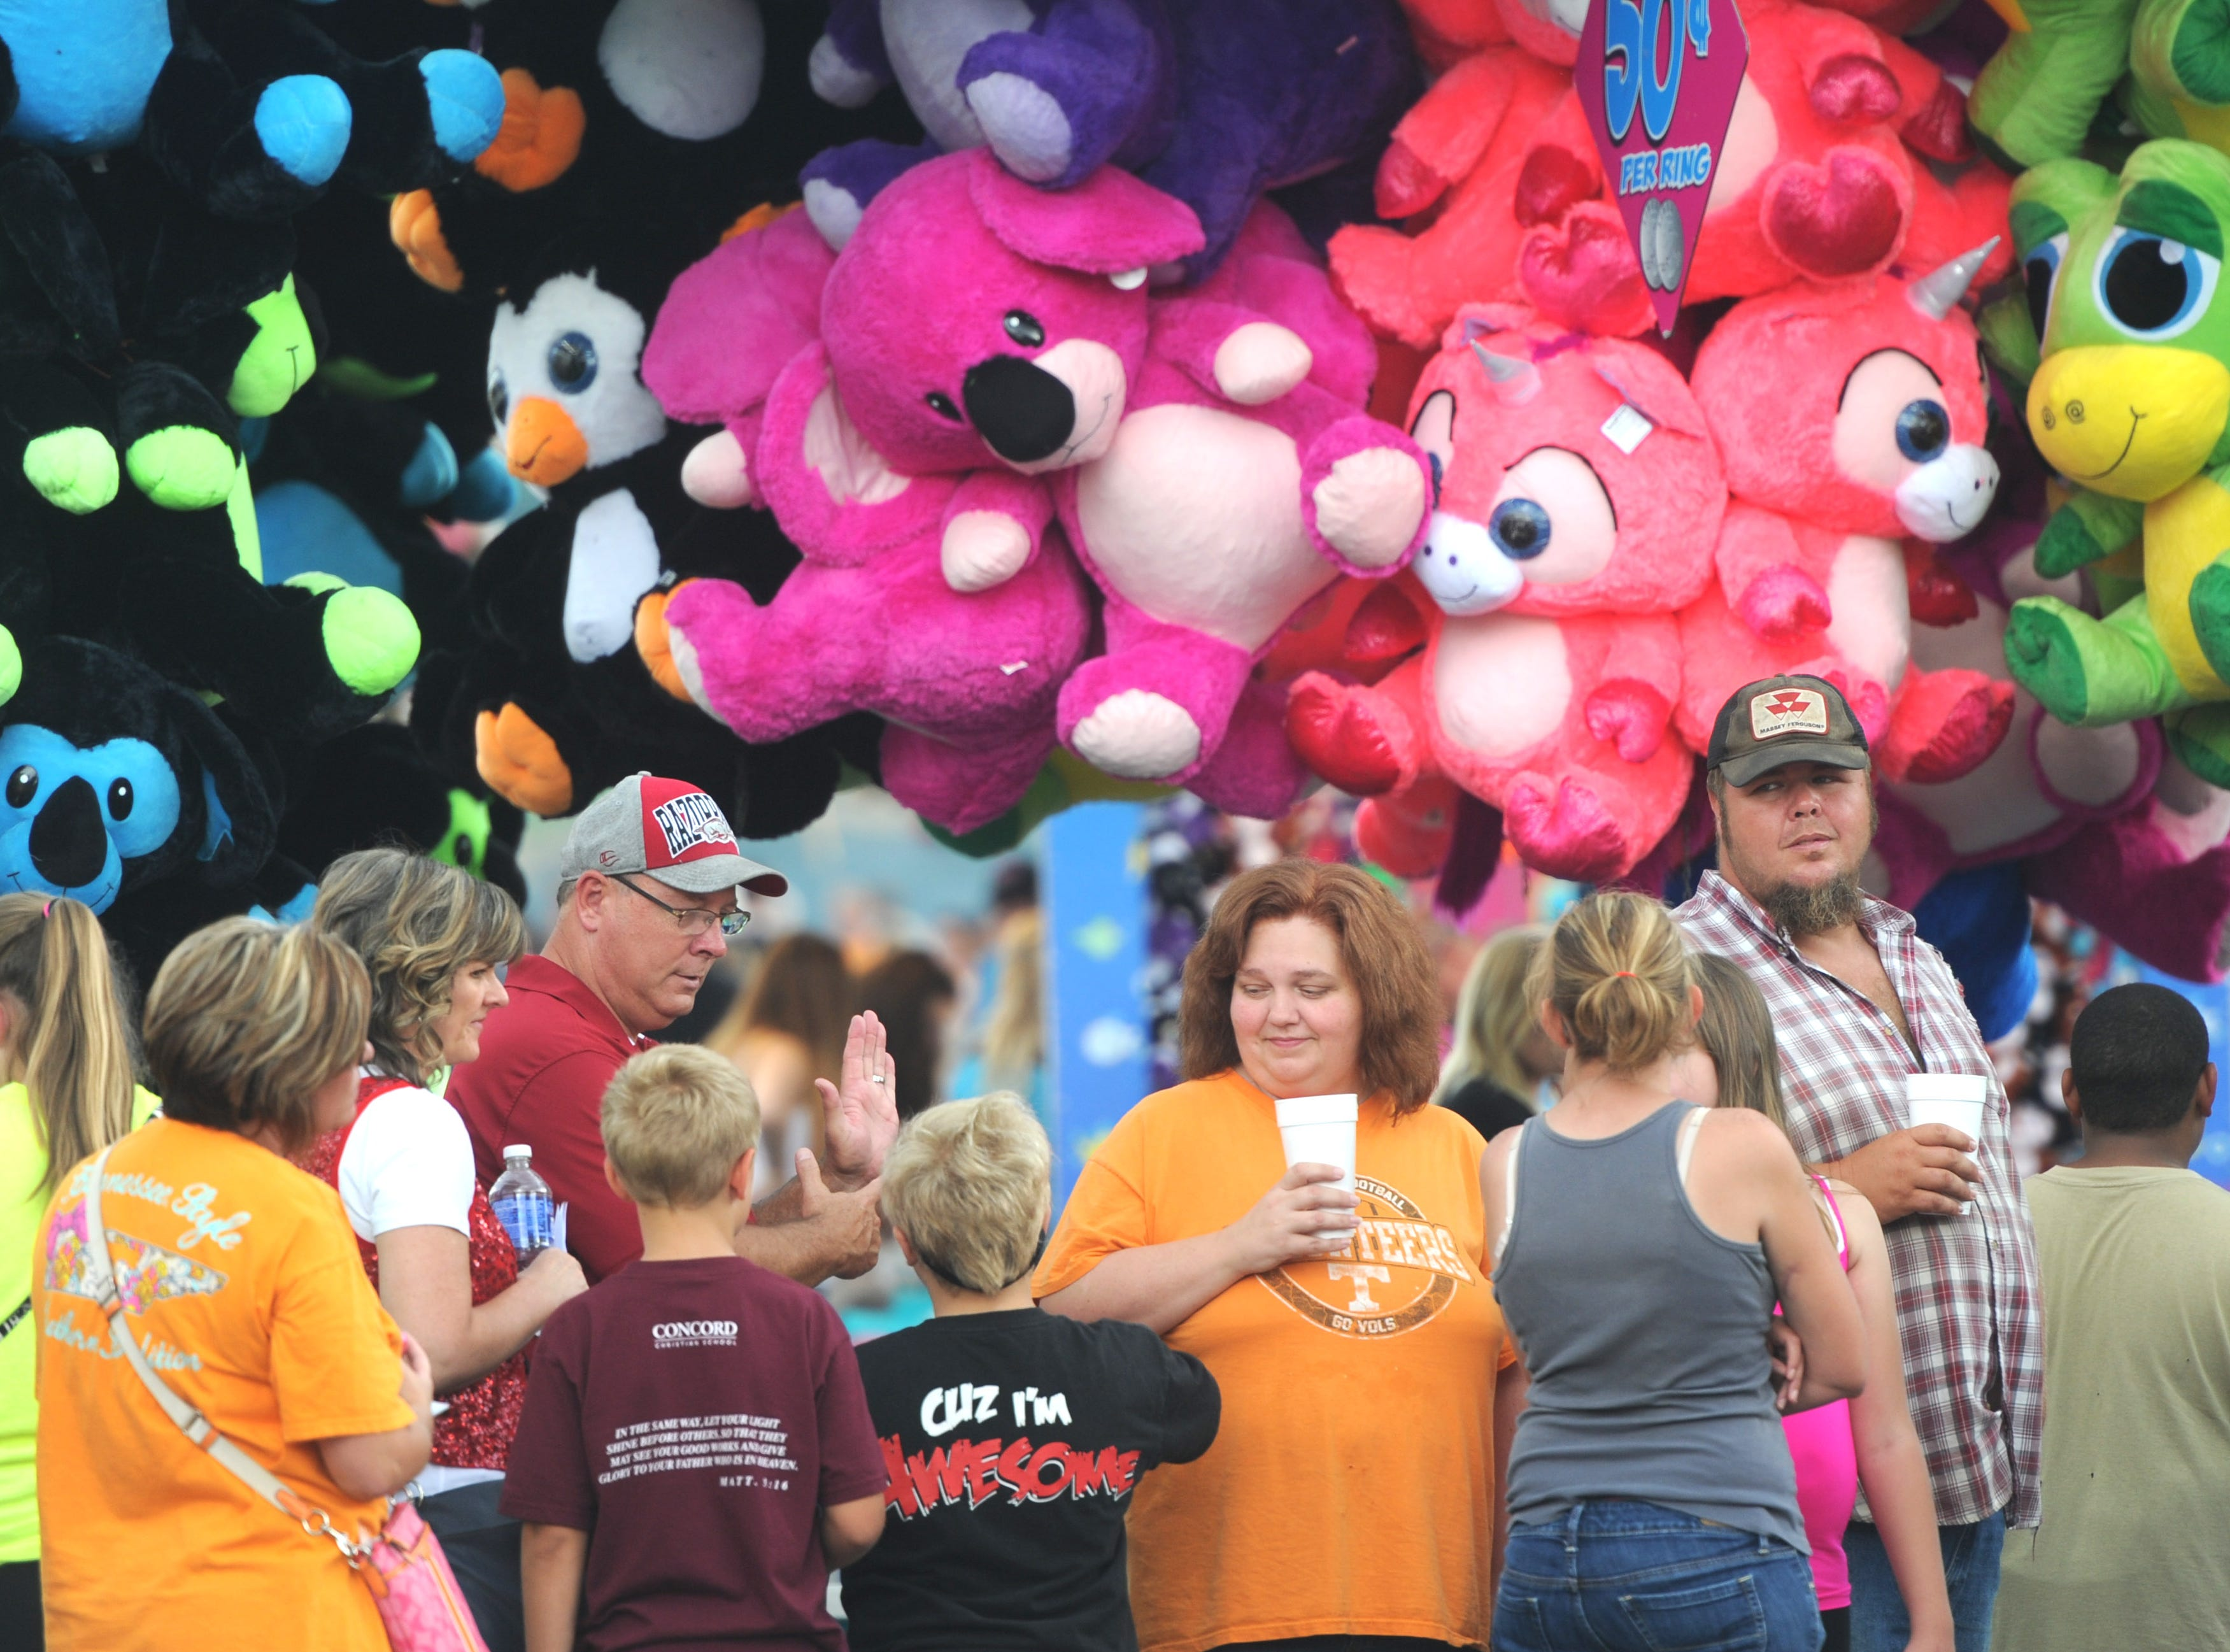 Fairgoers wait in line to buy ride tickets during the Tennessee Valley Fair's opening day at Chilhowee Park on Friday, Sept. 11, 2015.